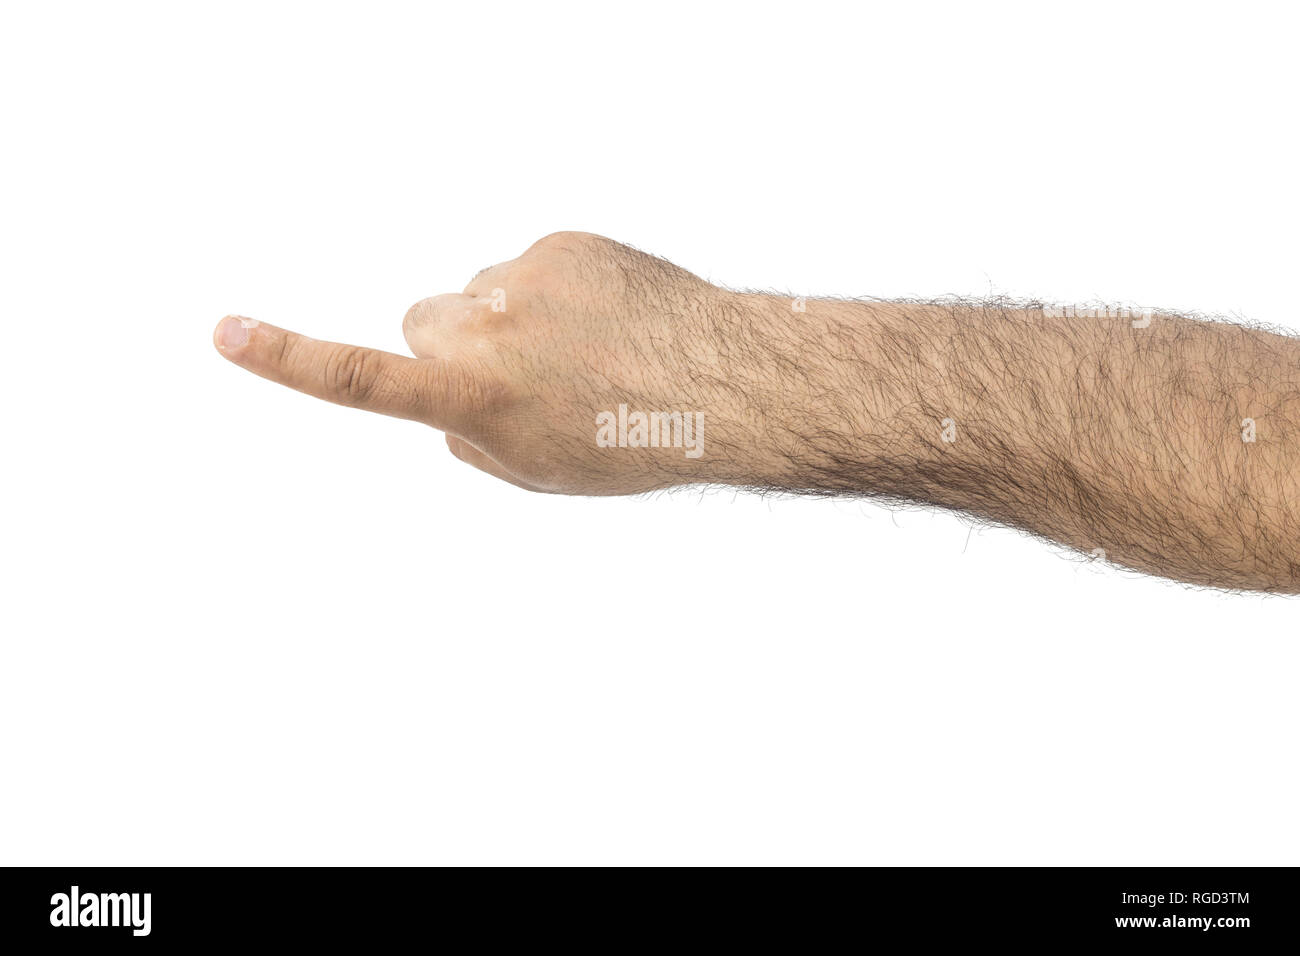 Man's hand touching or pointing to something isolated on white - Stock Image